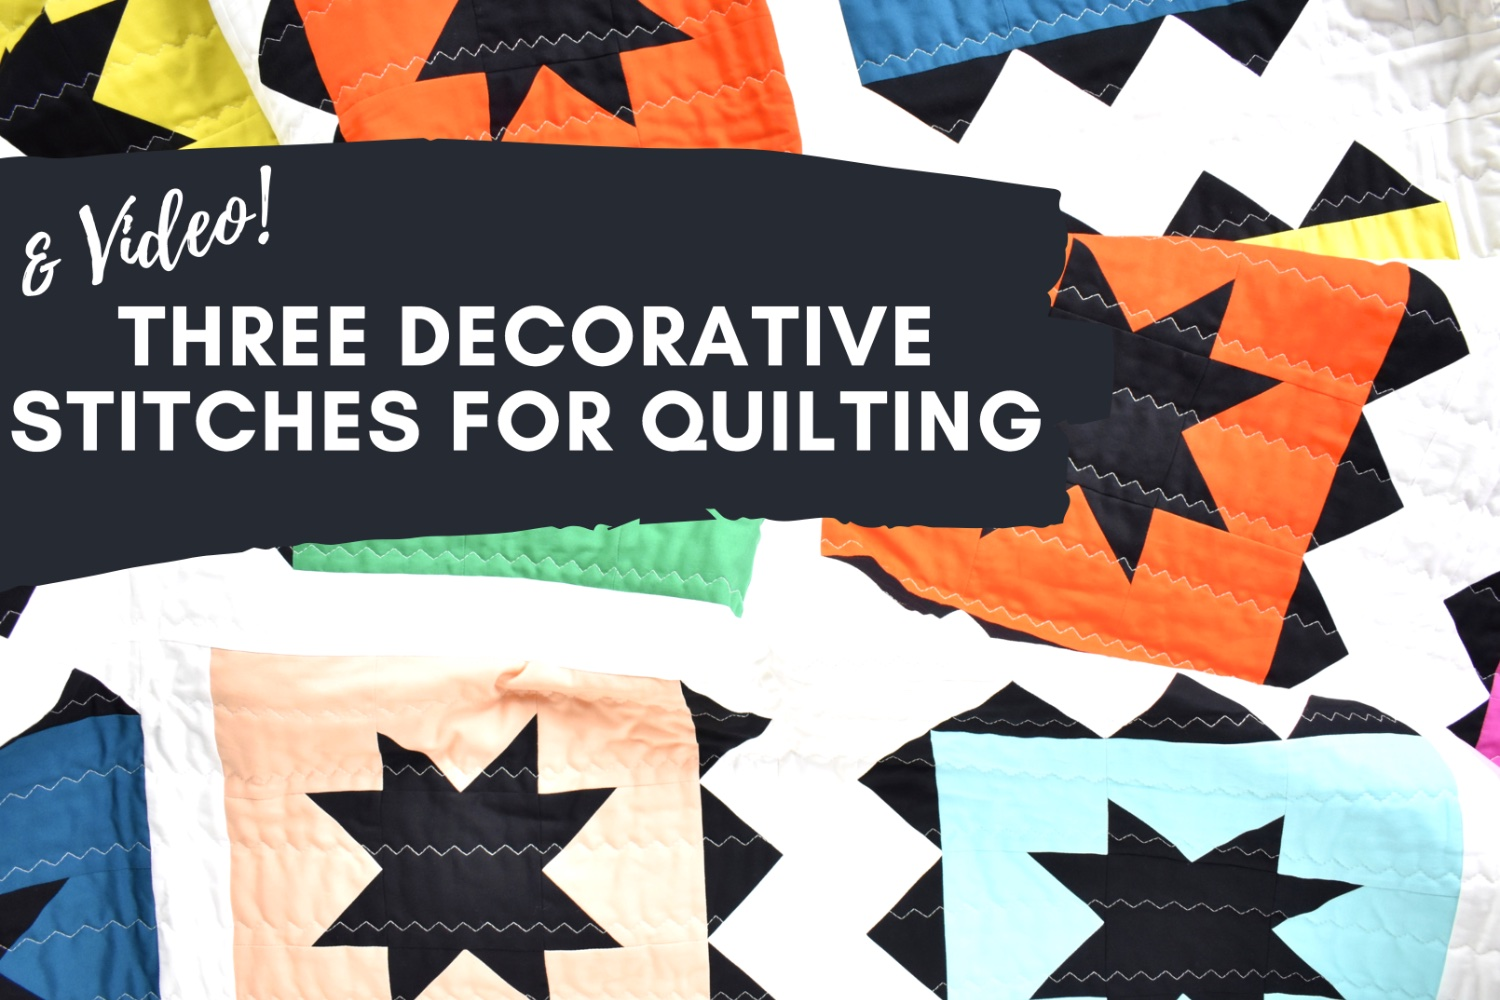 Decorative Stitches for Quilting